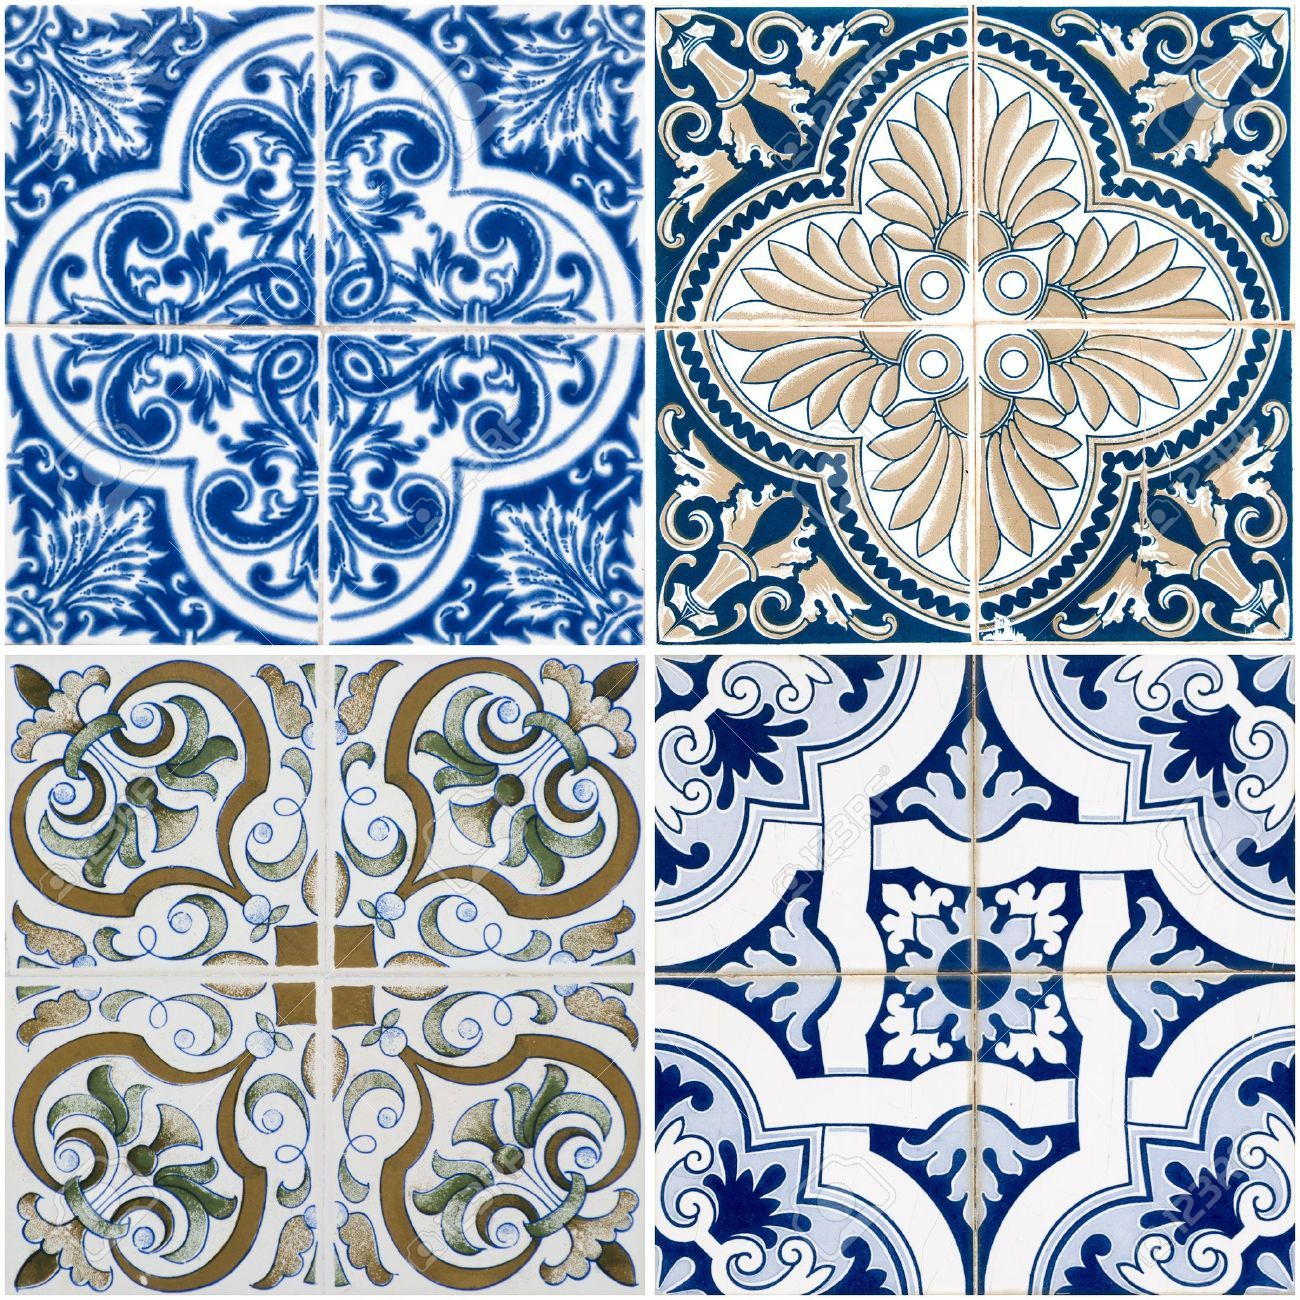 Spanish Decorative Wall Tiles Related Image  Dollhouse  Pinterest